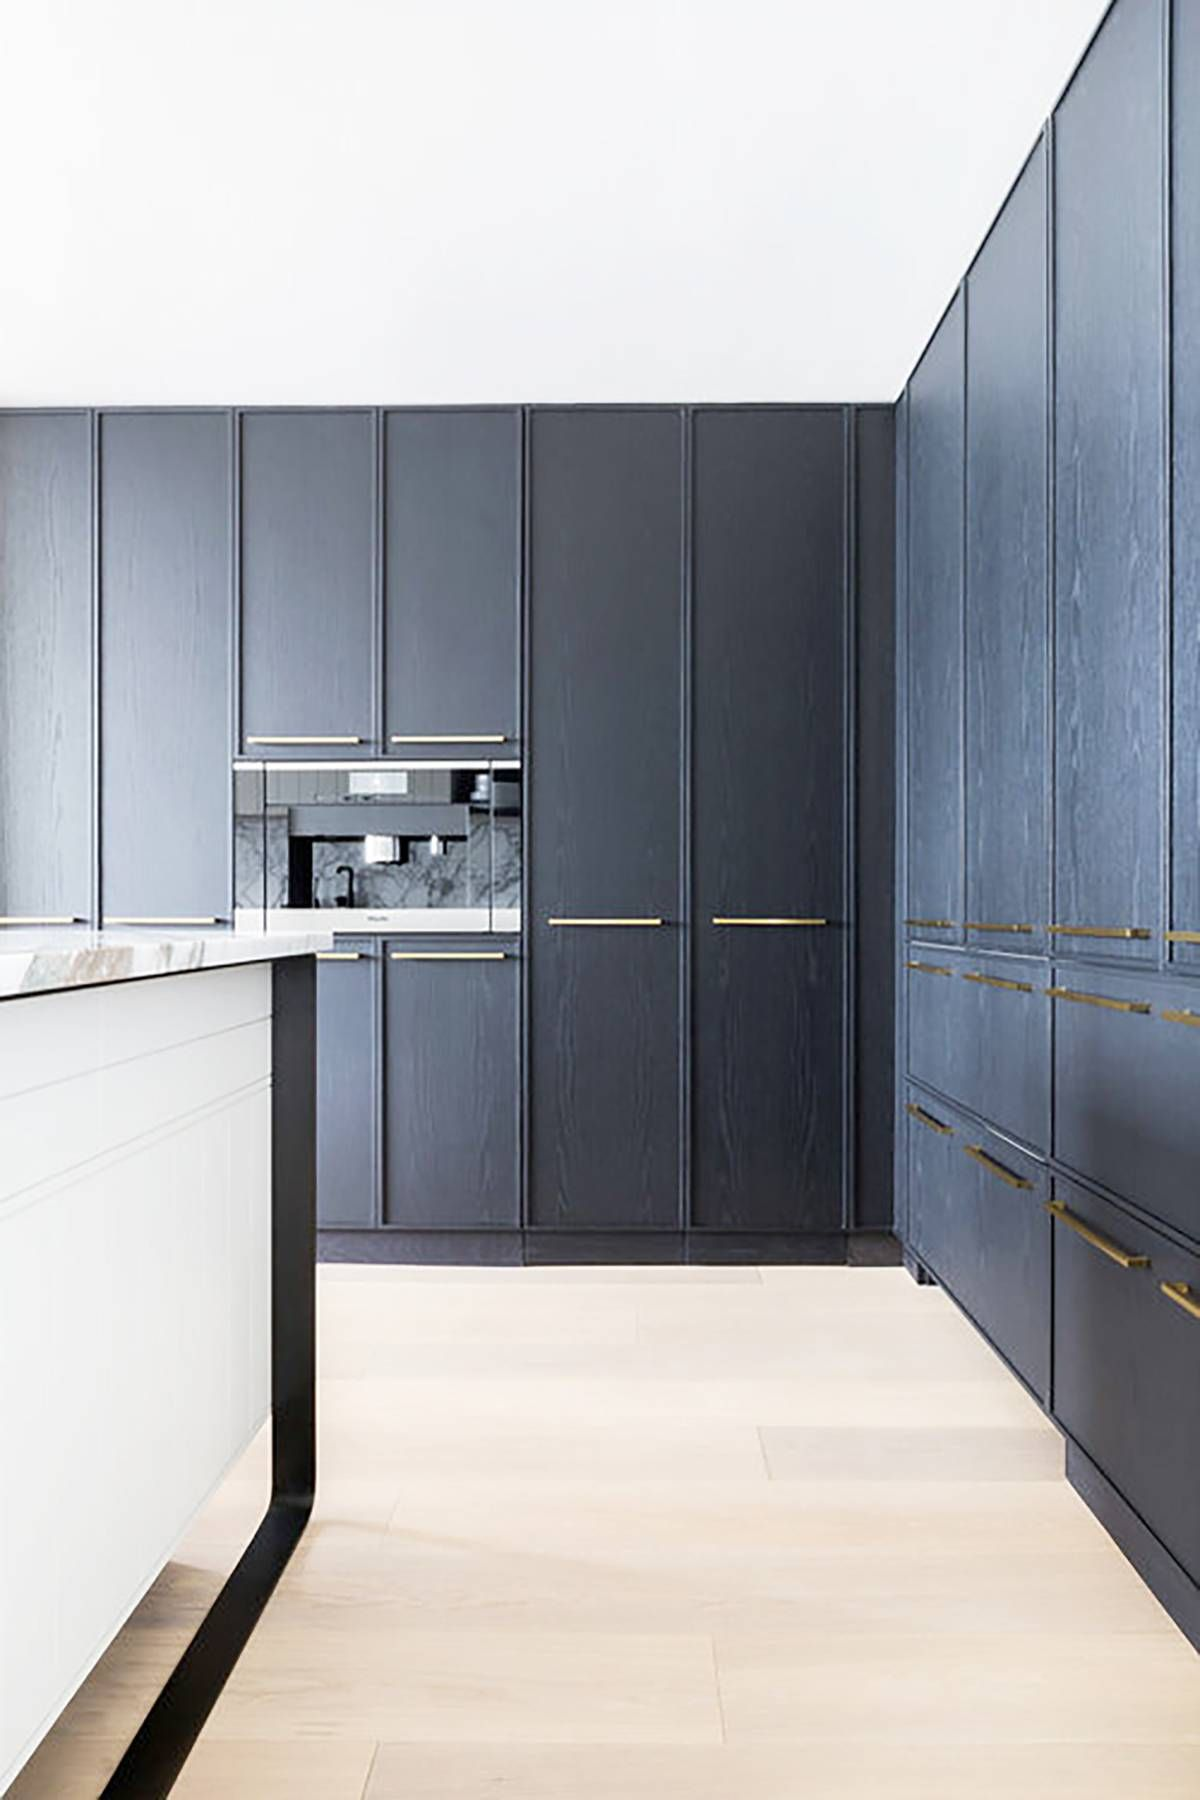 12 Modern Kitchen Ideas To Give Your Space A New Lease On Life Kitchen Trends Kitchen Design Kitchen Renovation